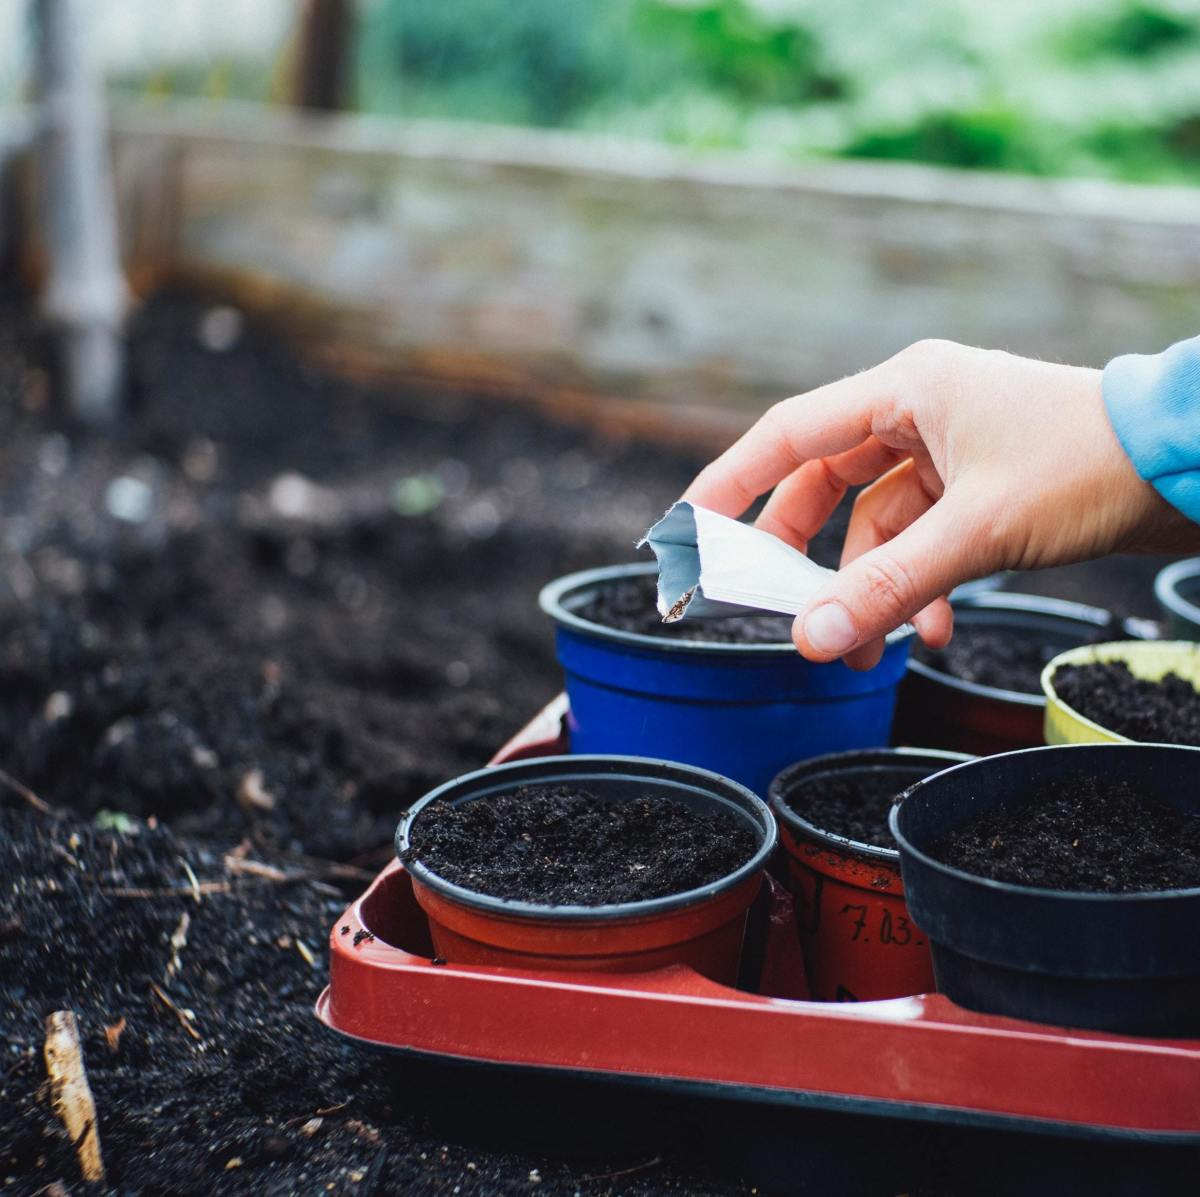 Ensuring that your soil has the essential nutrients and trace minerals it needs will help you grow the most delicious veggies.